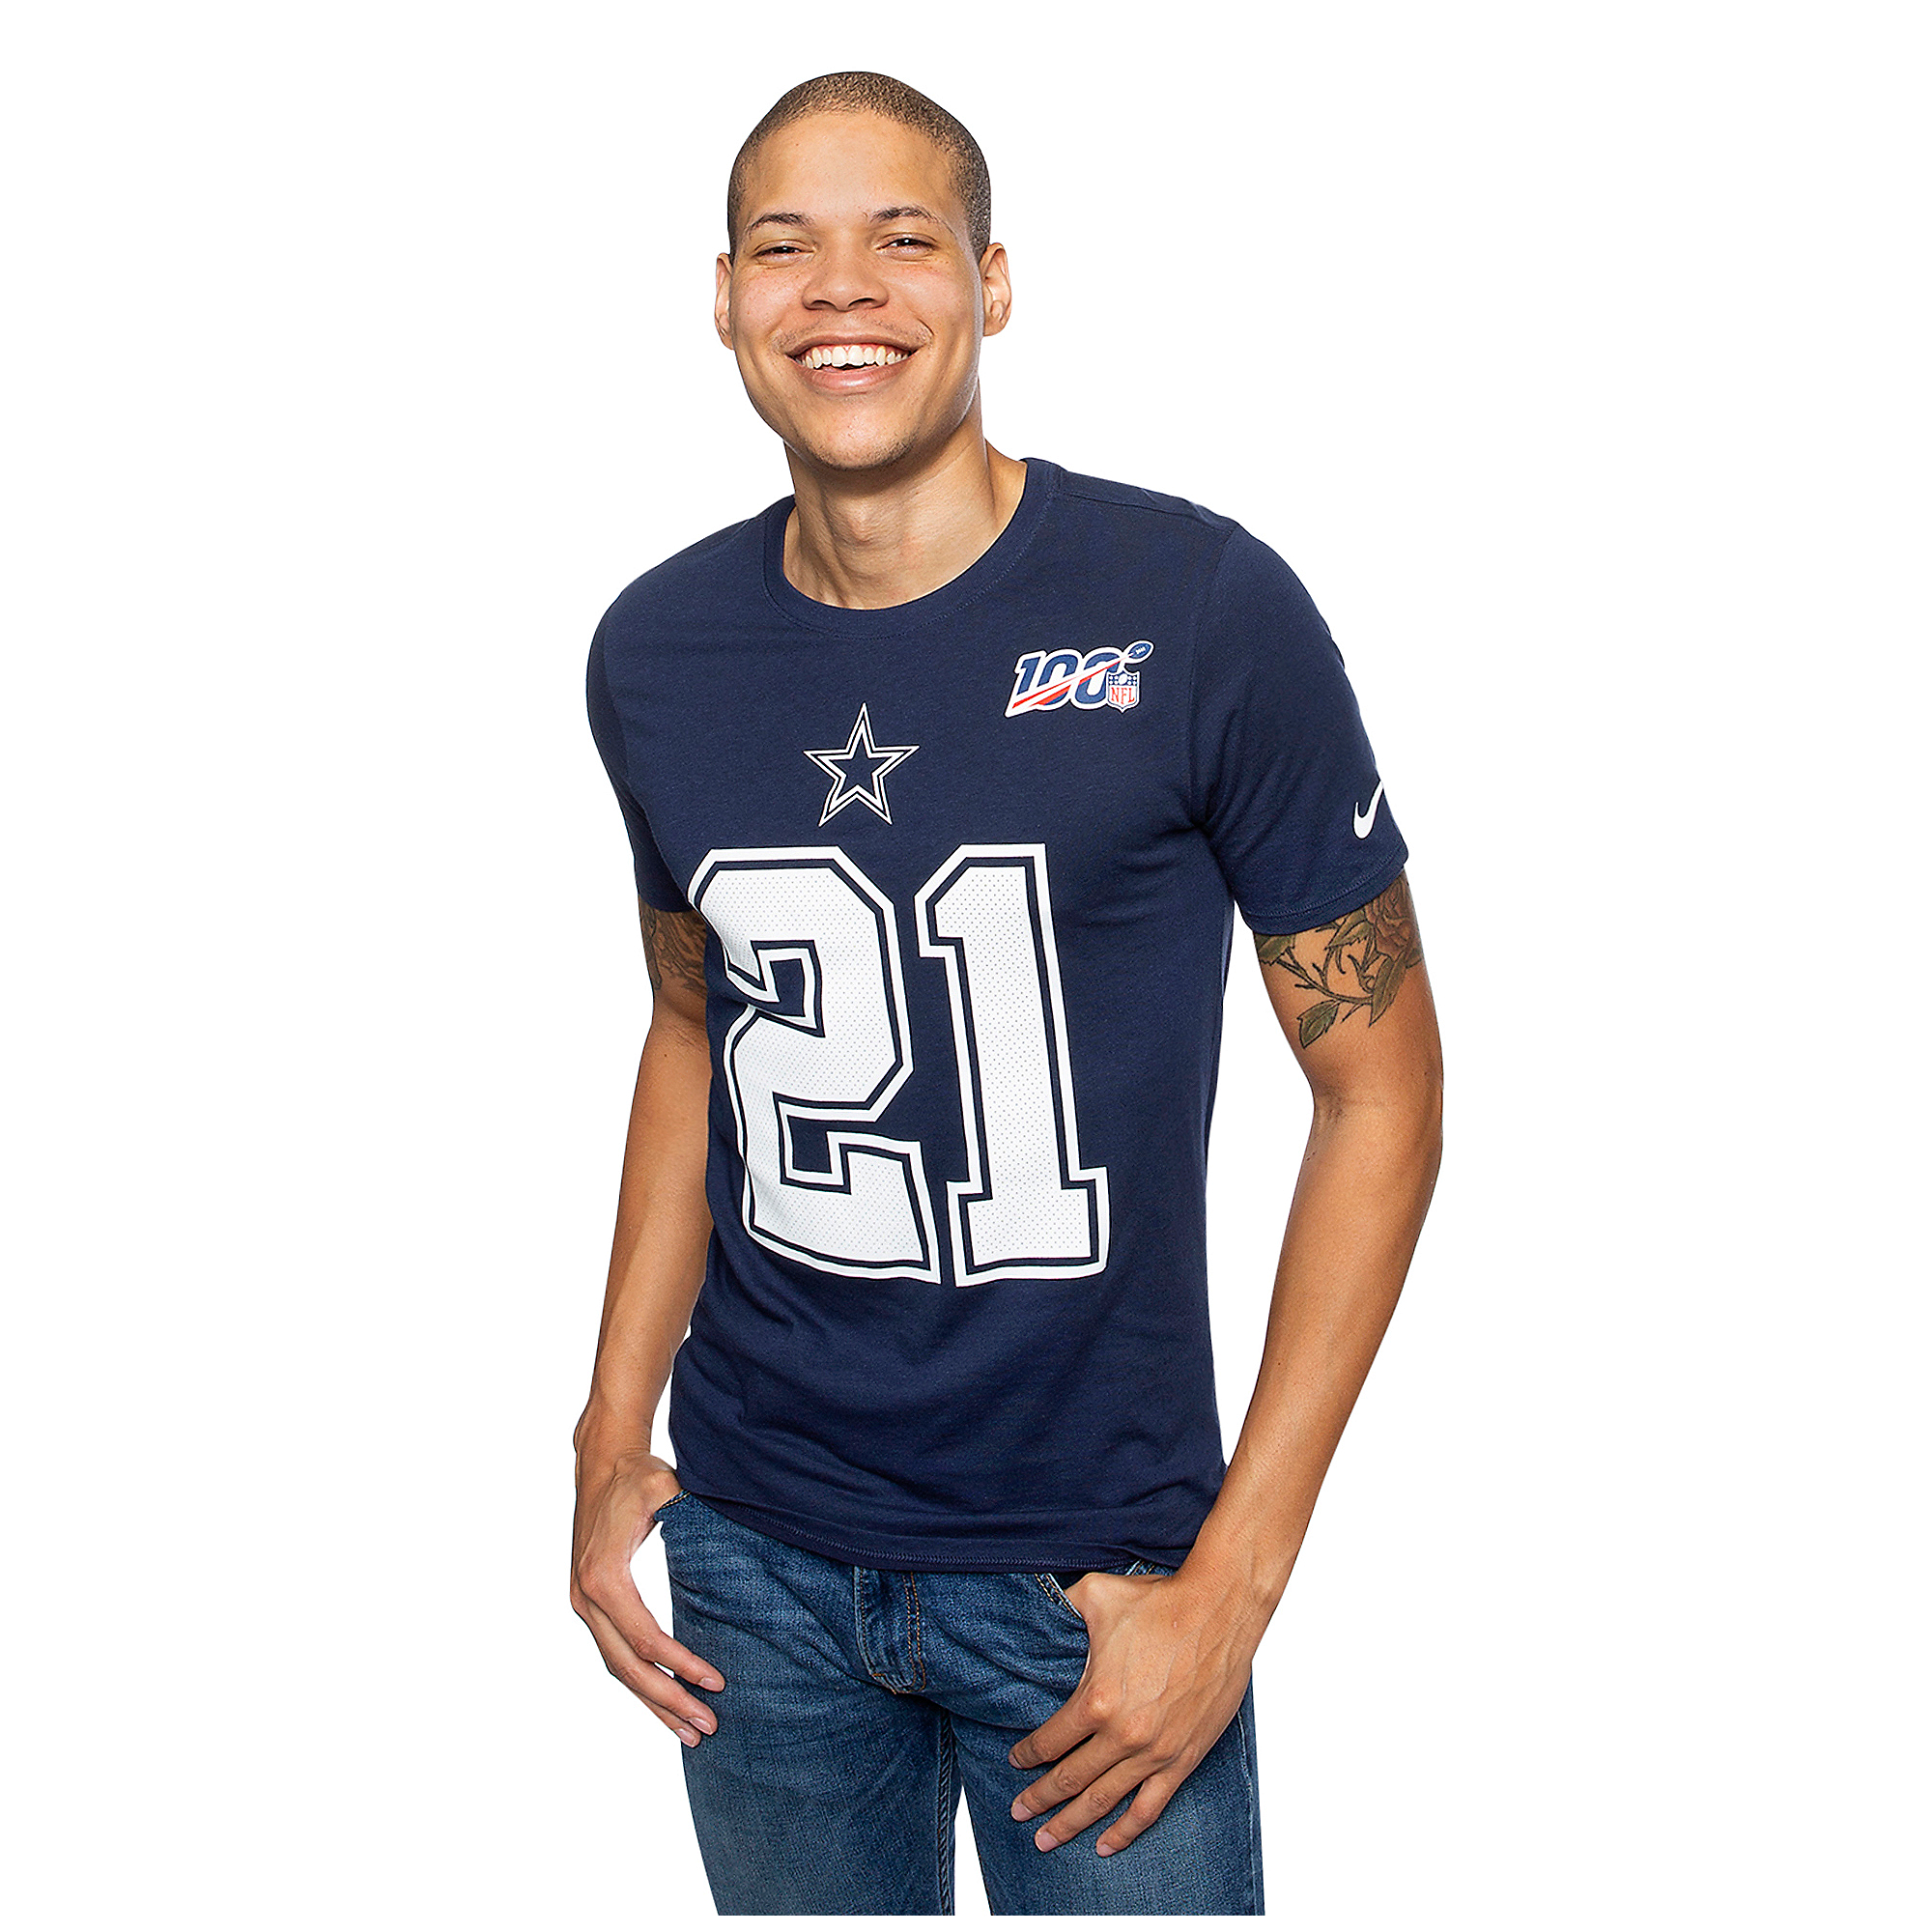 Dallas Cowboys Mens Ezekiel Elliott #21 NFL 100 Nike Player Pride T-Shirt